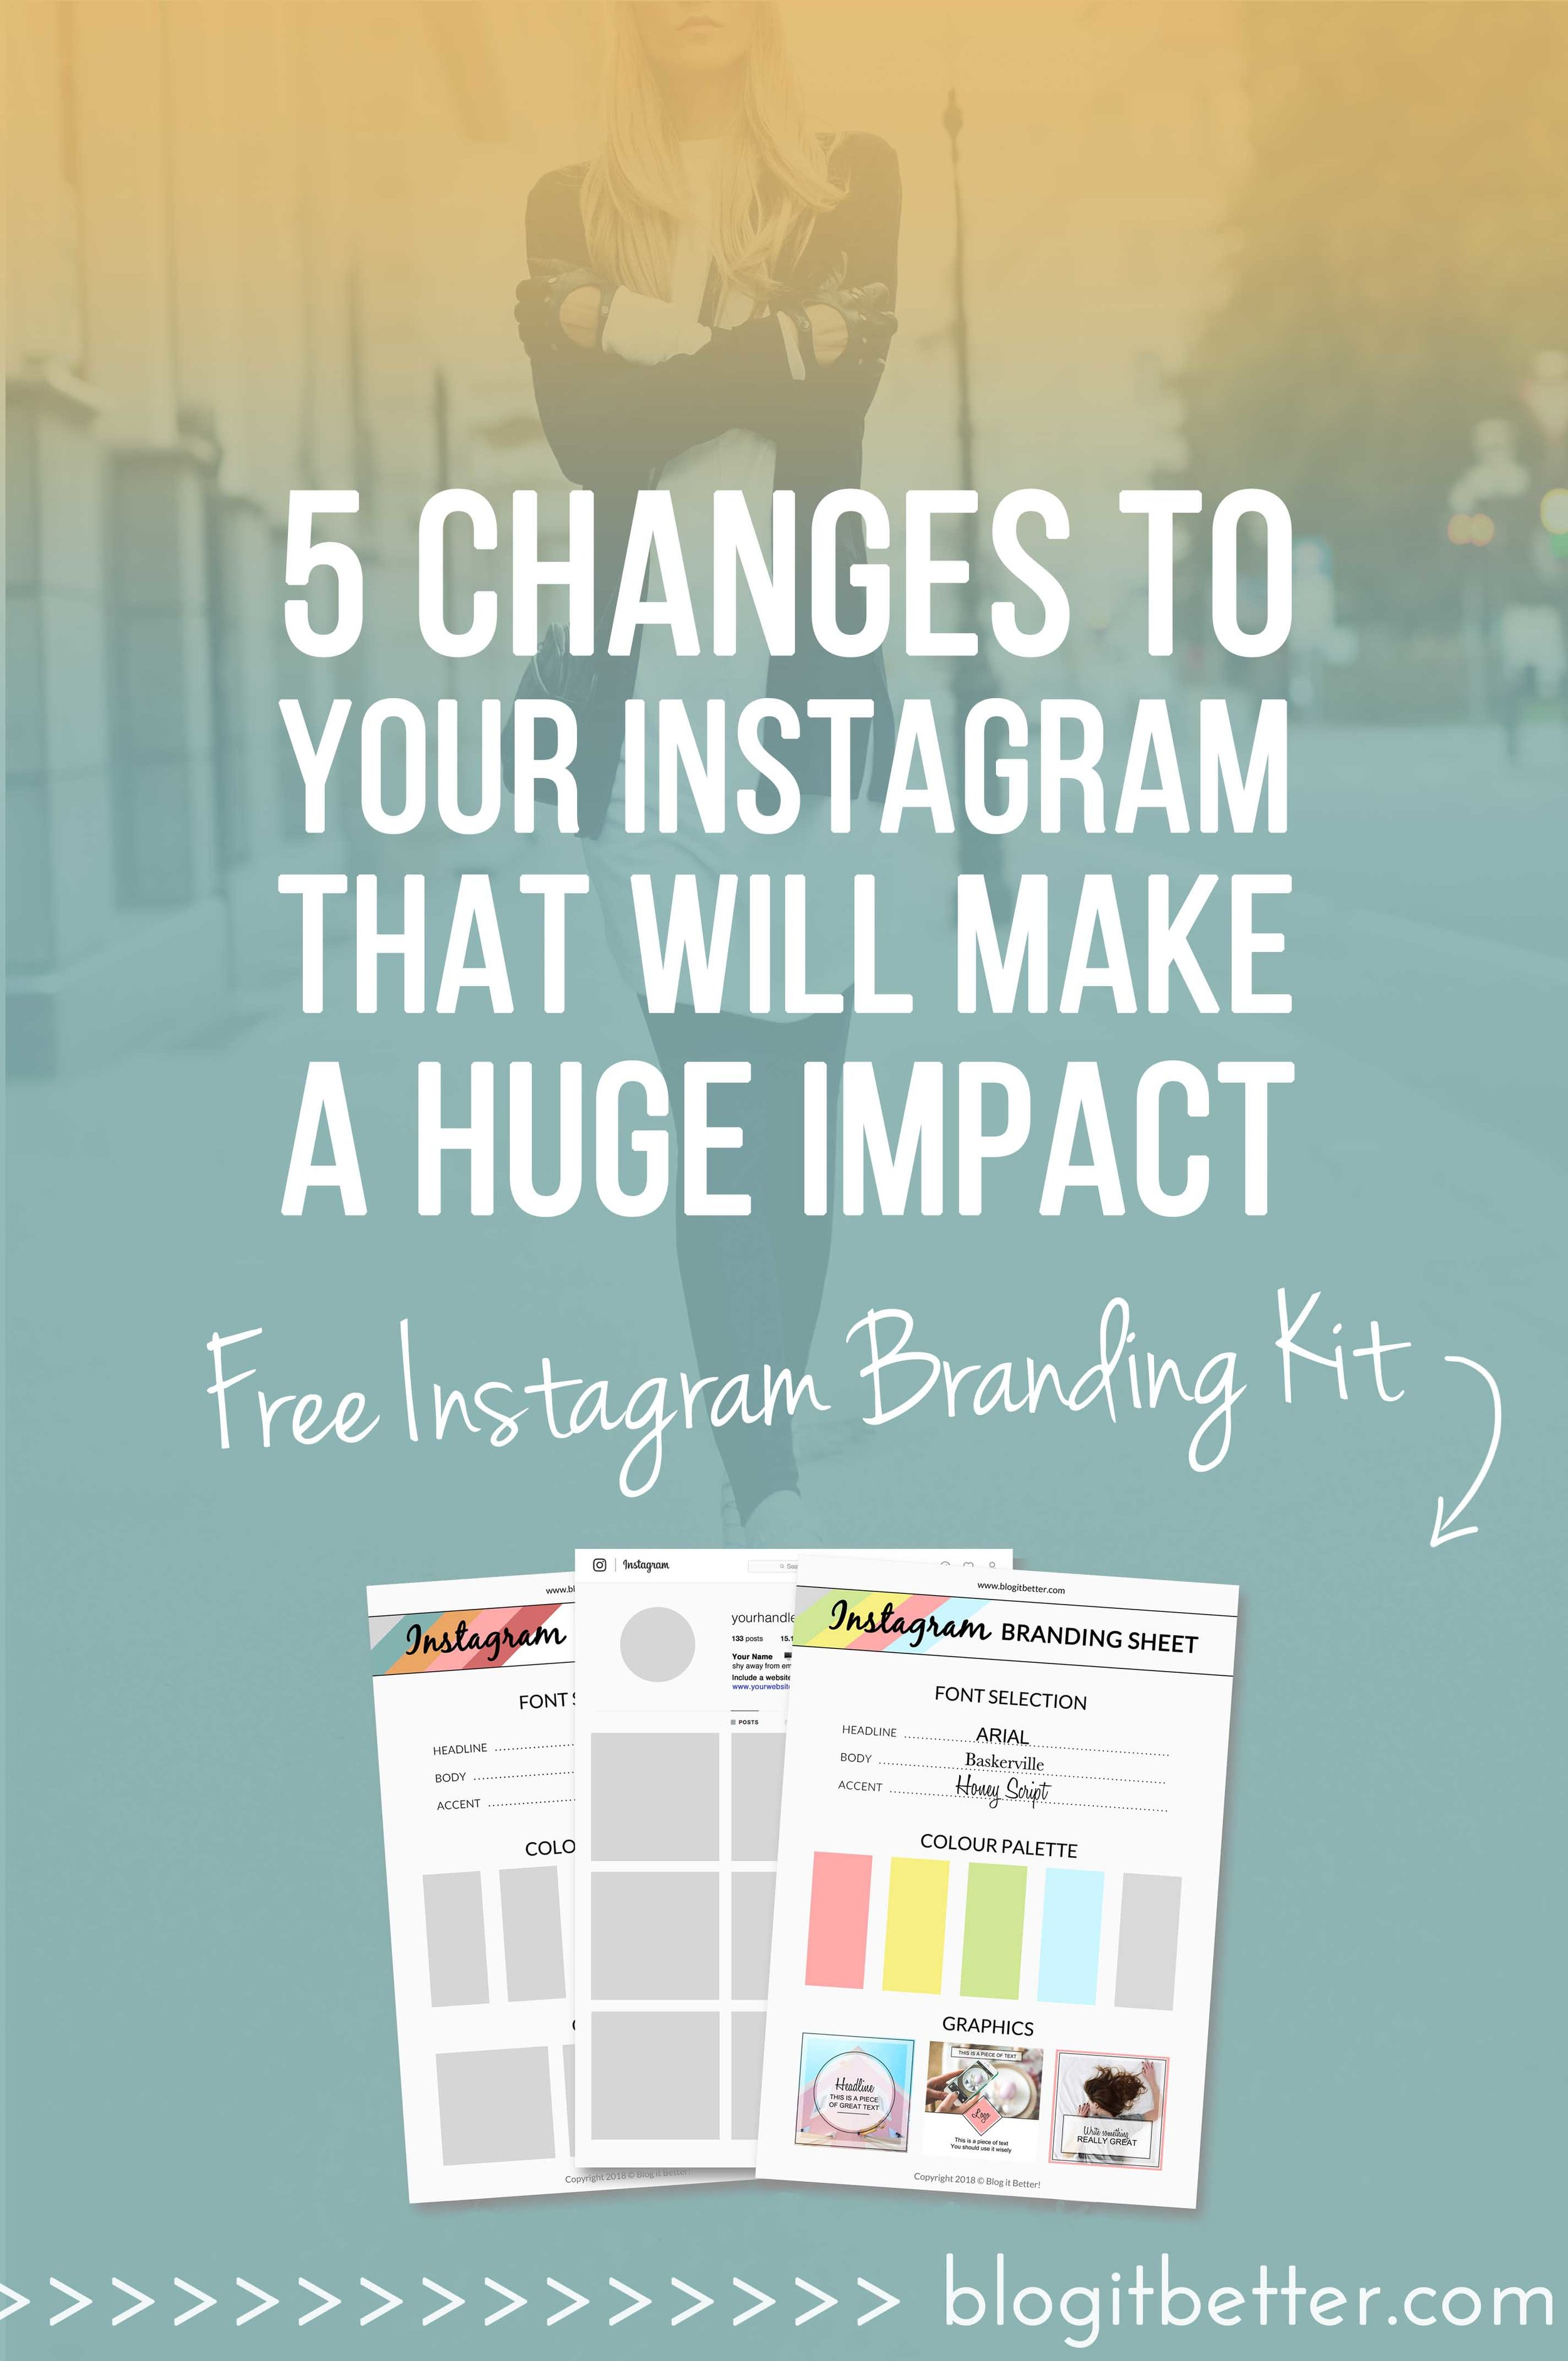 5 Changes To Your Instagram Account That Will drastically increase